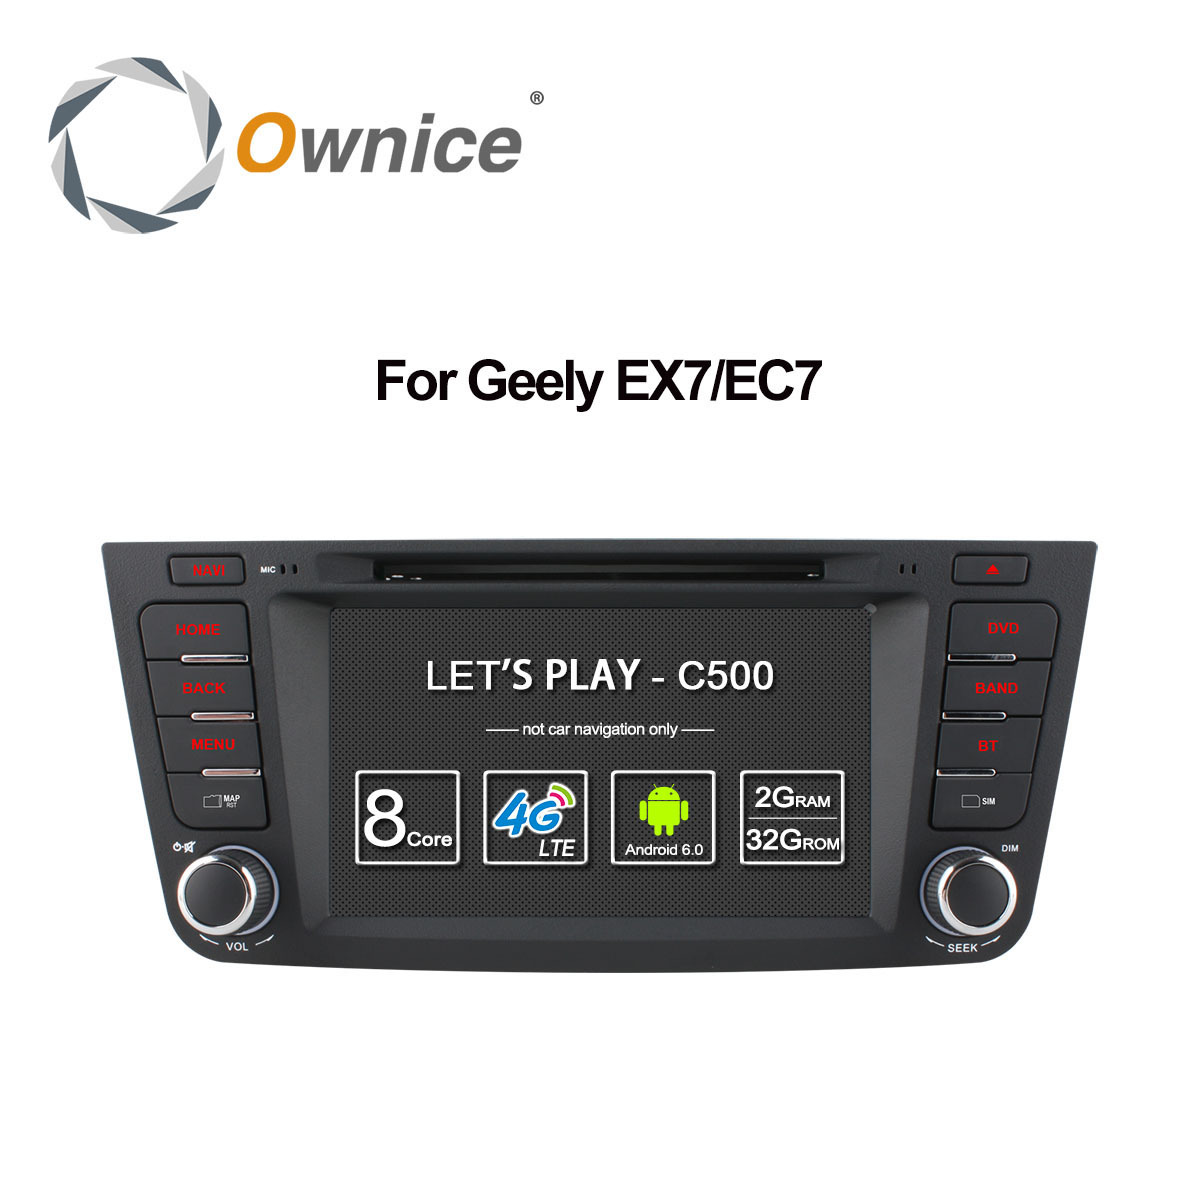 Lecteur DVD de voiture Ownice C500 Octa 8 Core pour Geely Emgrand GX7 EX7 X7 Android 6.0 Gps 2 din 2 GB RAM 32 GB ROM support 4G DAB +